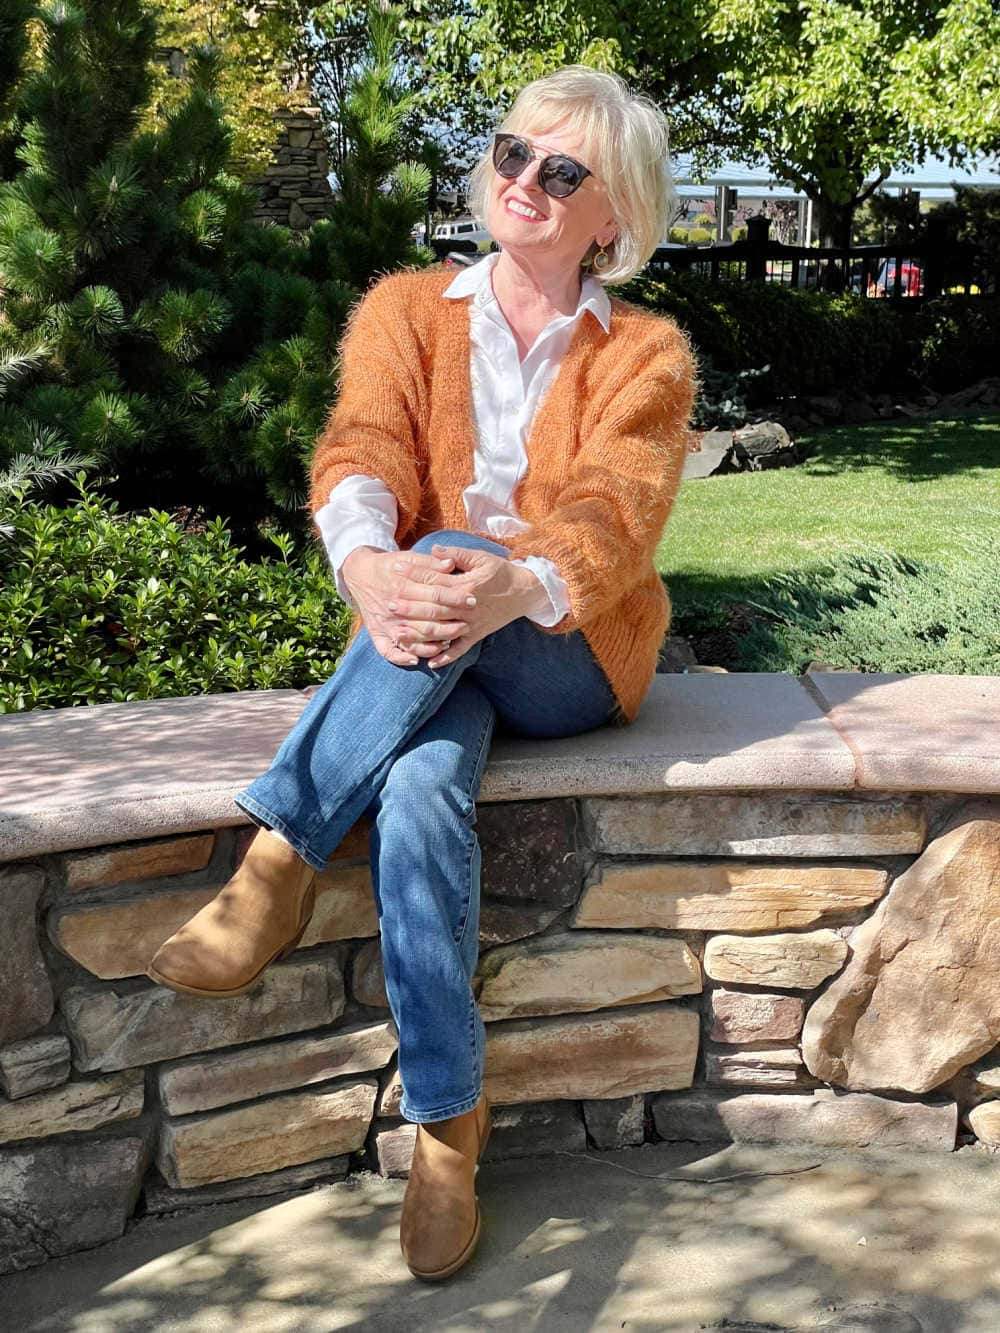 bolnd woman sitting on wall wearing rust colored cardigan and blue jeans